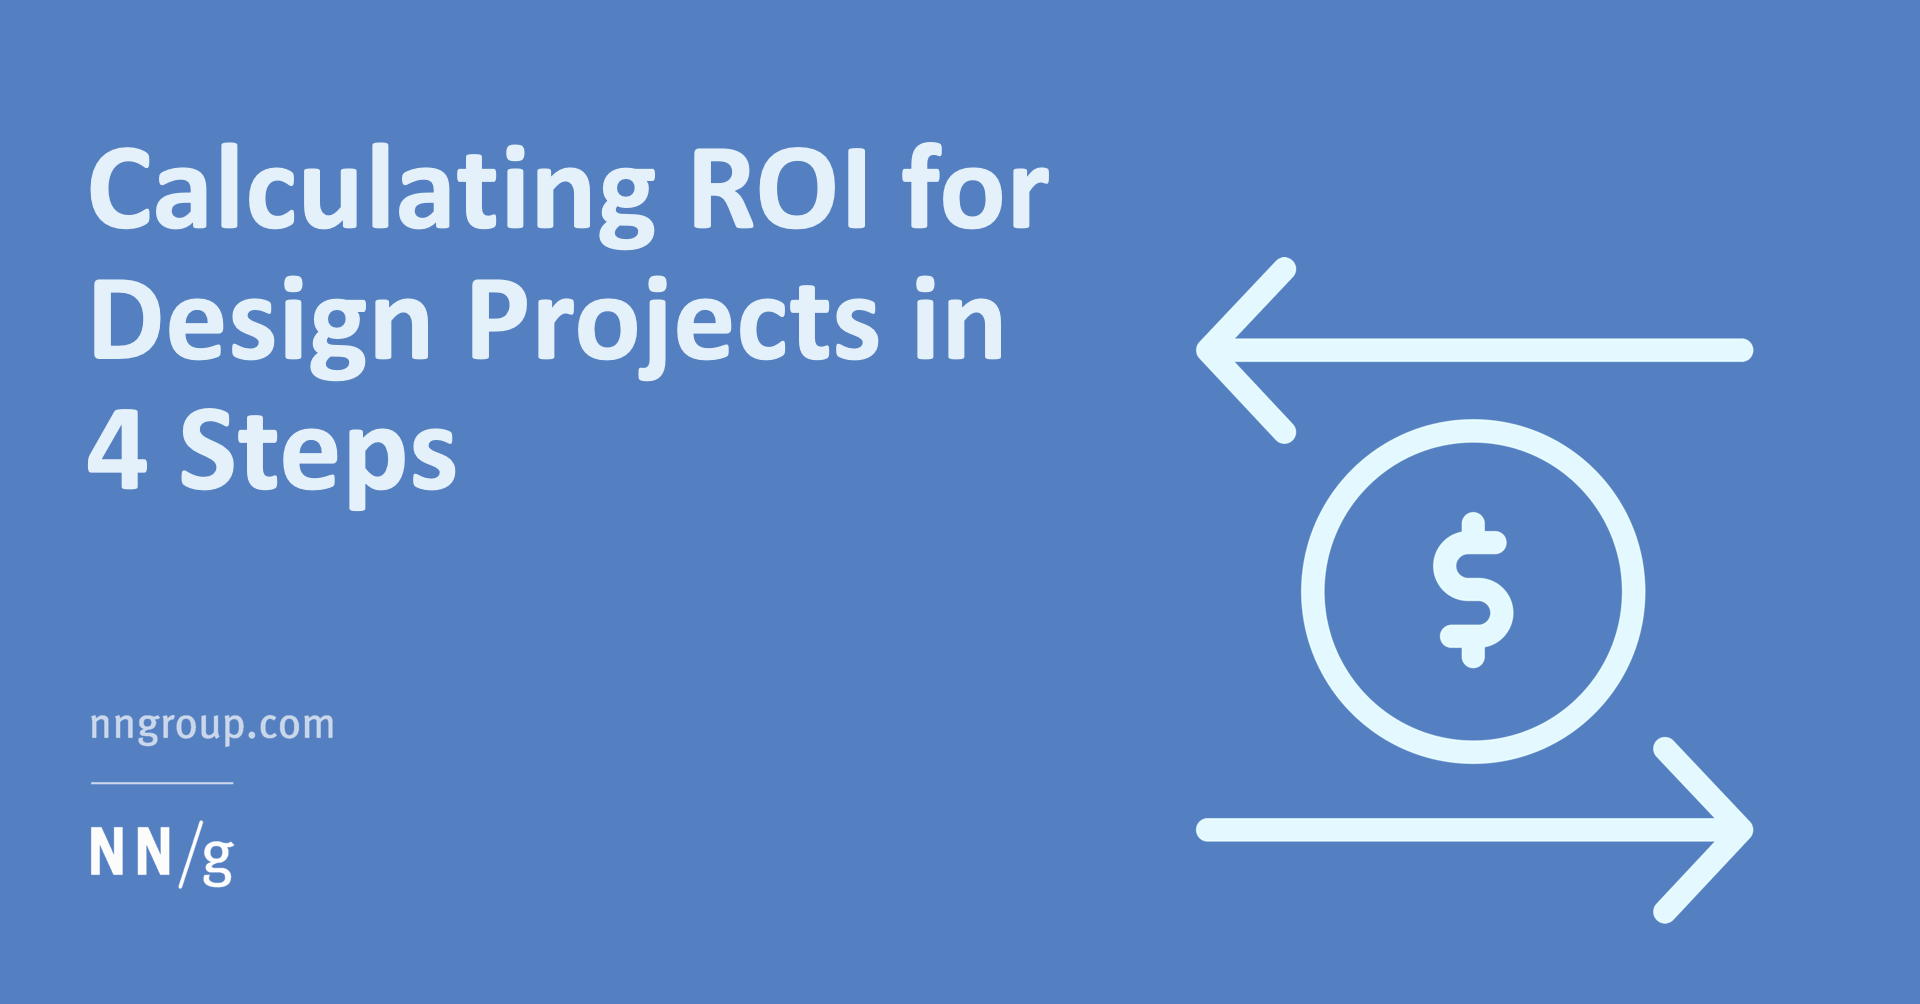 Calculating ROI for Design Projects in 4 Steps